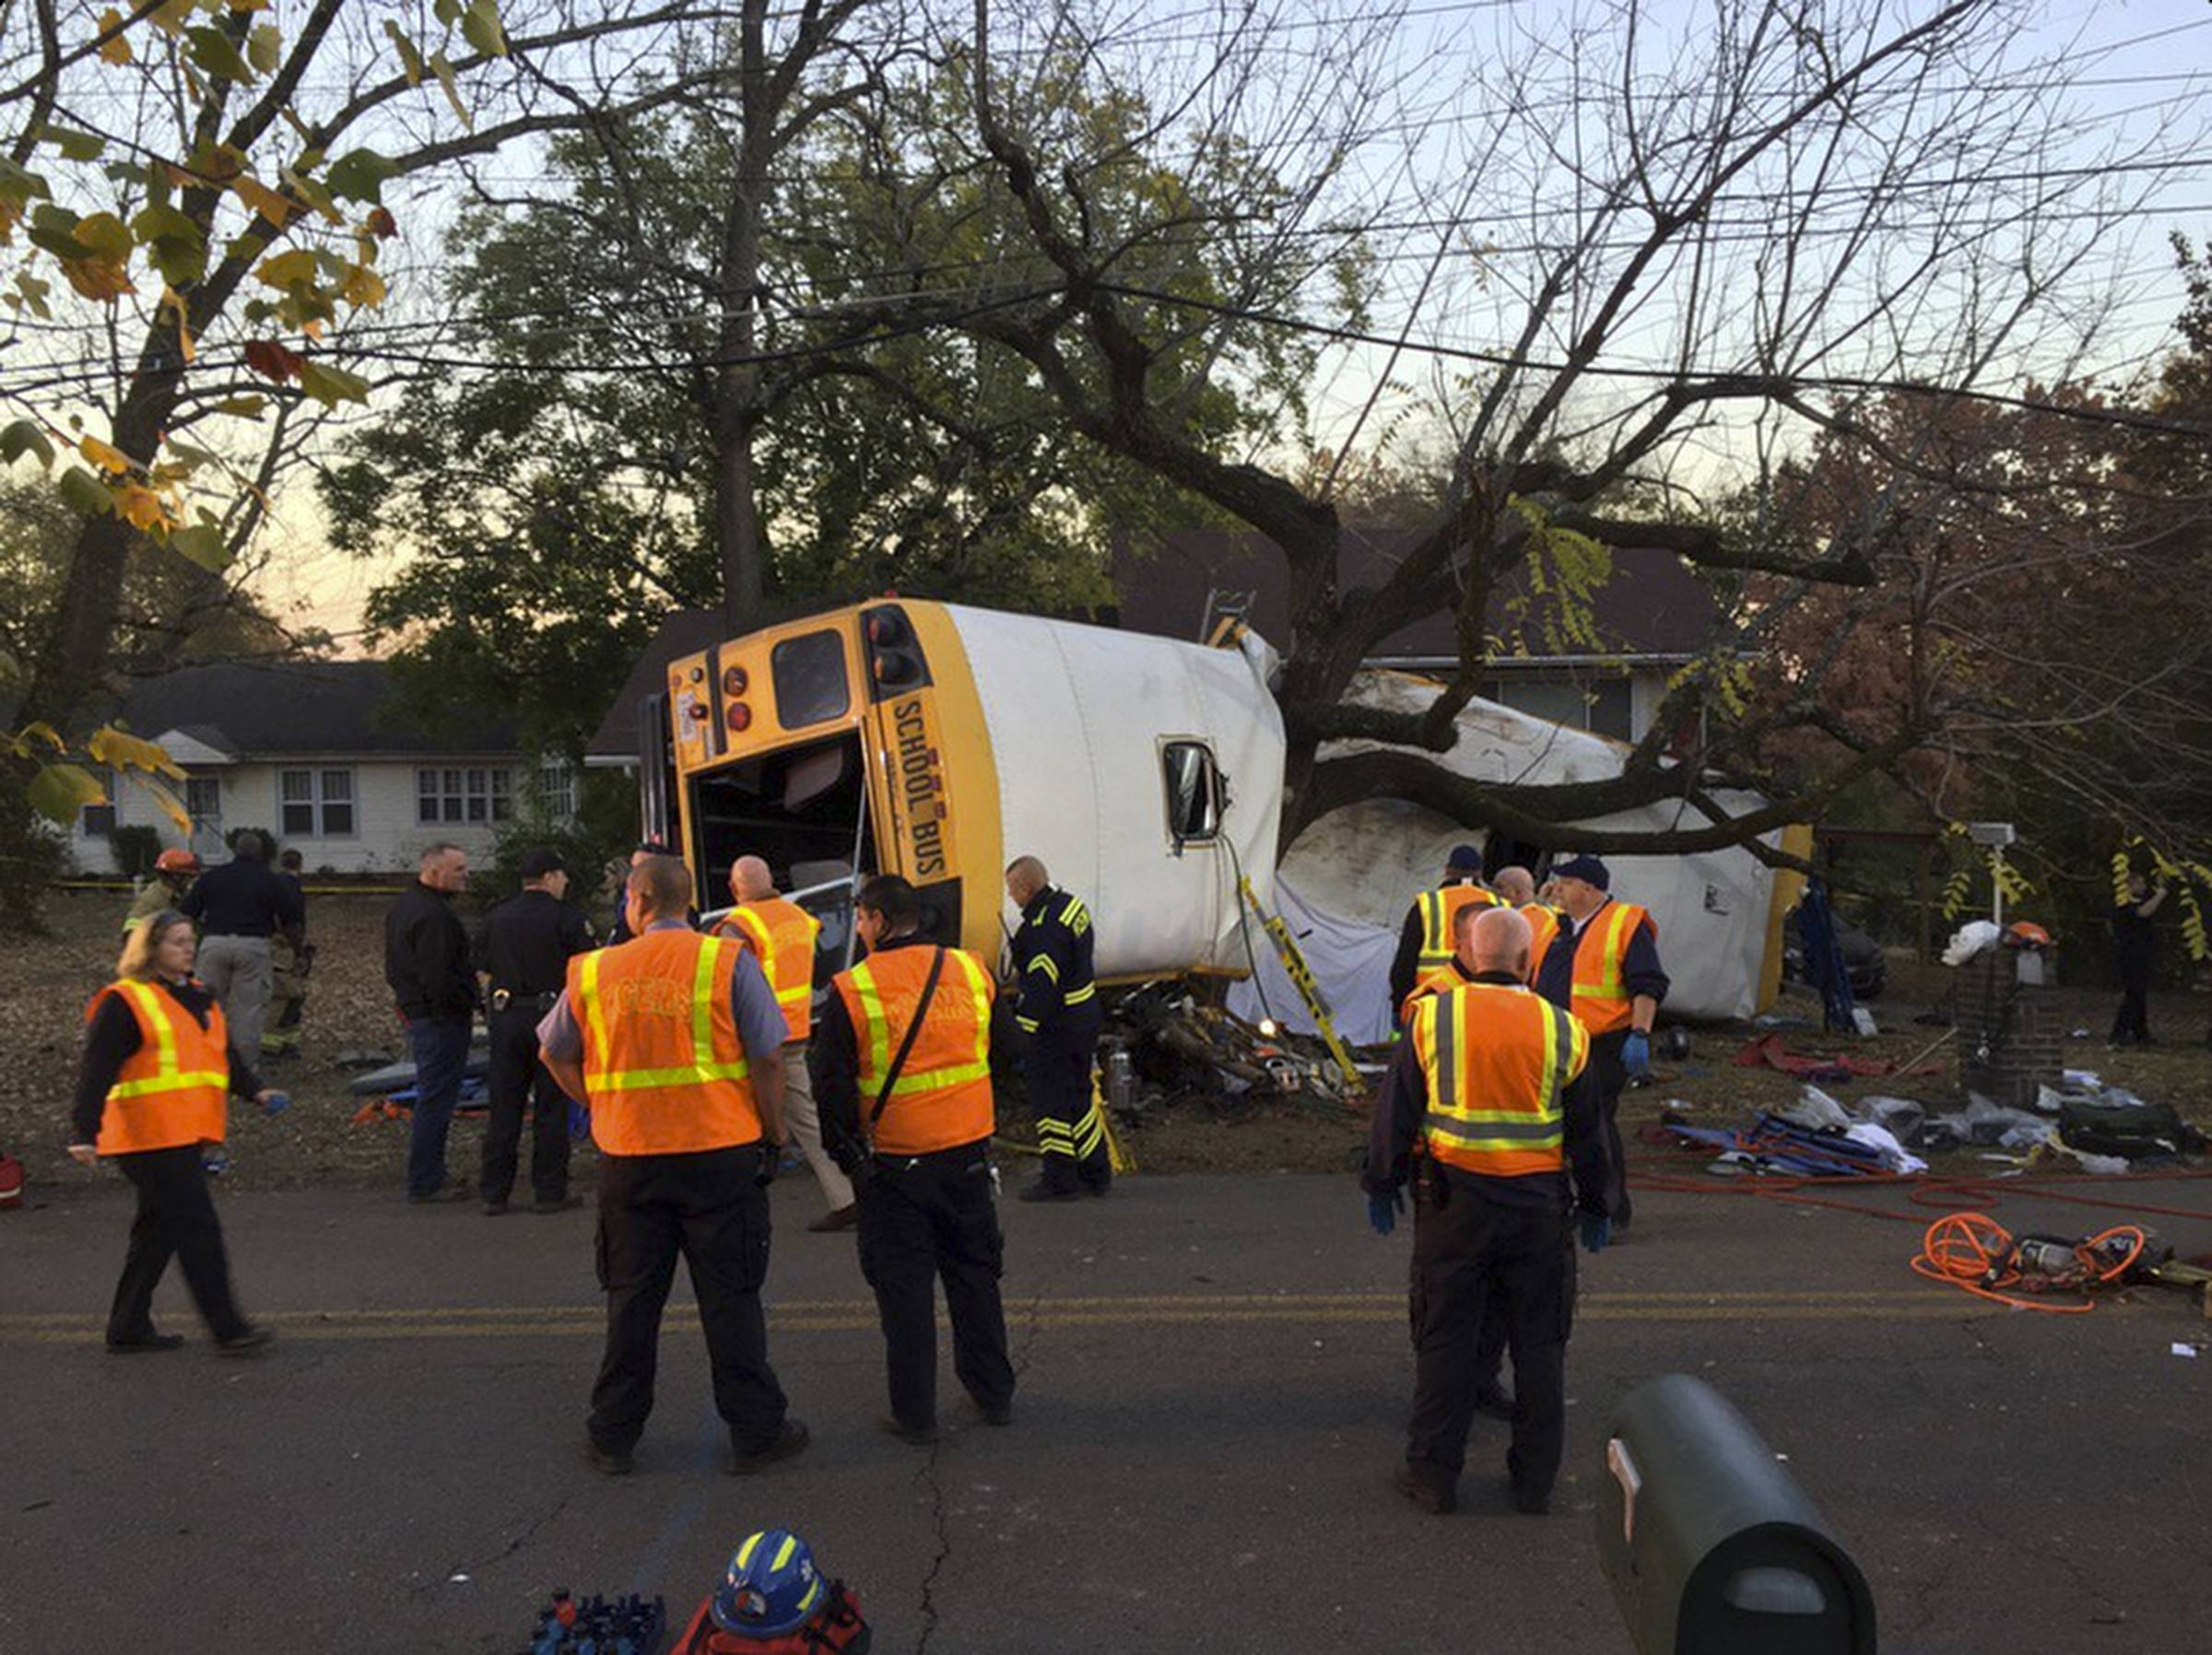 What's to prevent another school bus tragedy?